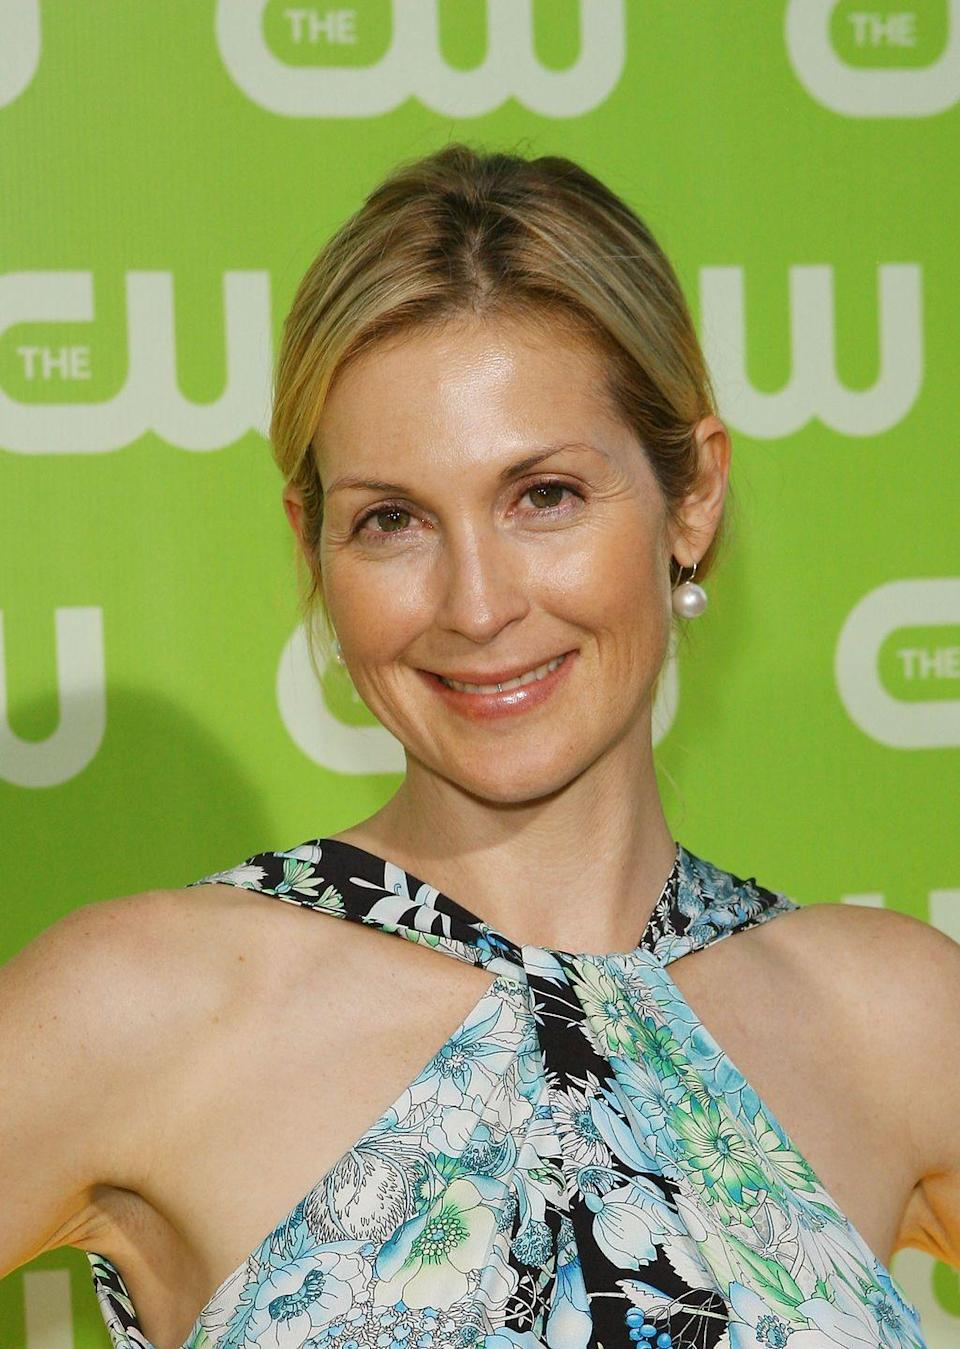 <p>Before she was Lily van der Woodsen, Kelly played major roles on shows like <em>Melrose Place.</em> Then, in 2007, she finally became the world's most famous Upper East Side mom.</p>